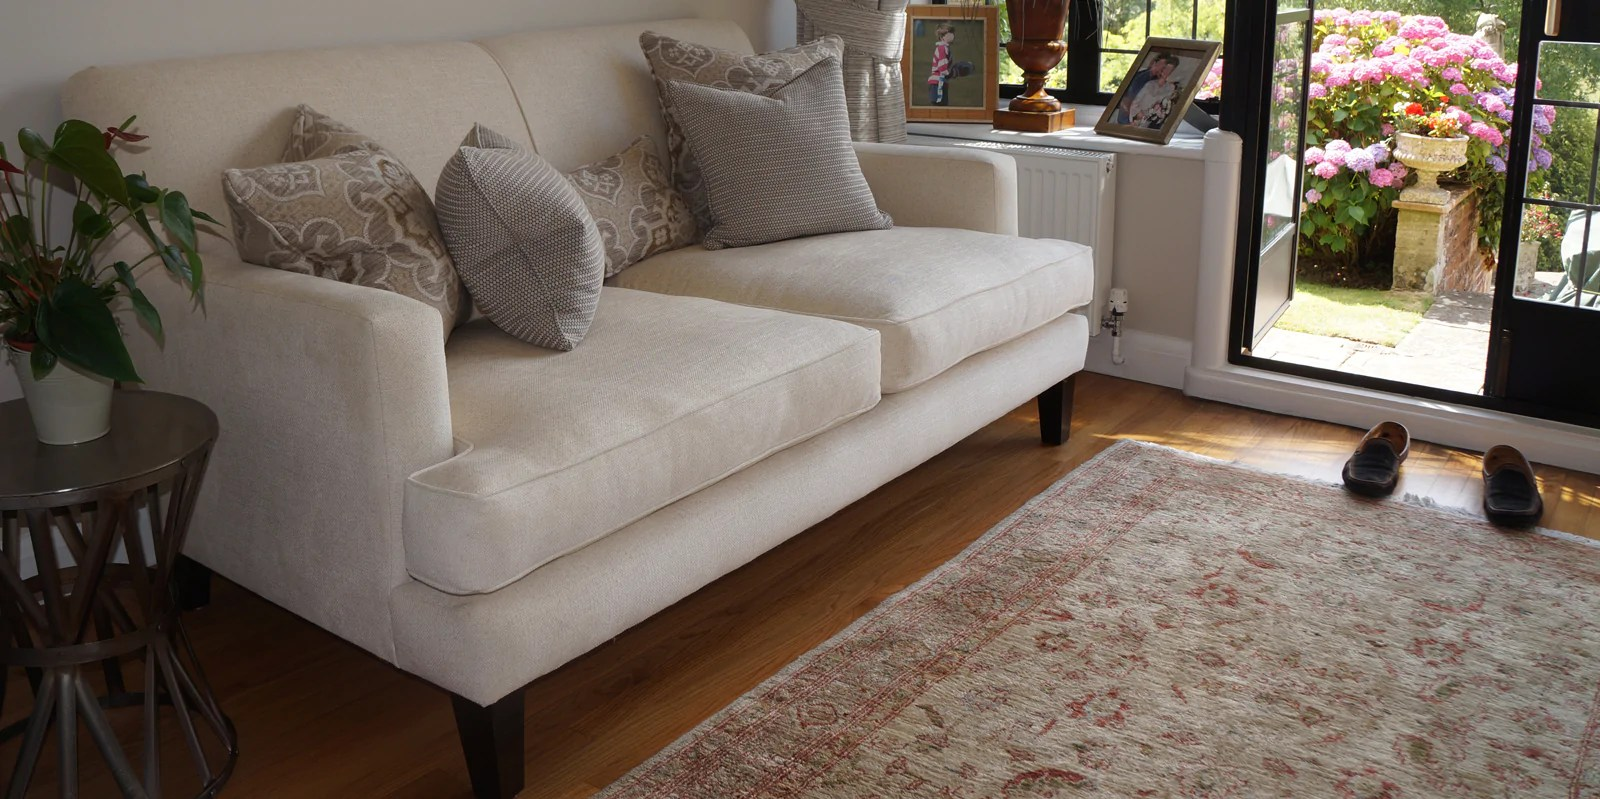 Settle Tunbridge Wells Sofas Tables Bespoke Handmade Chairs Cabinets